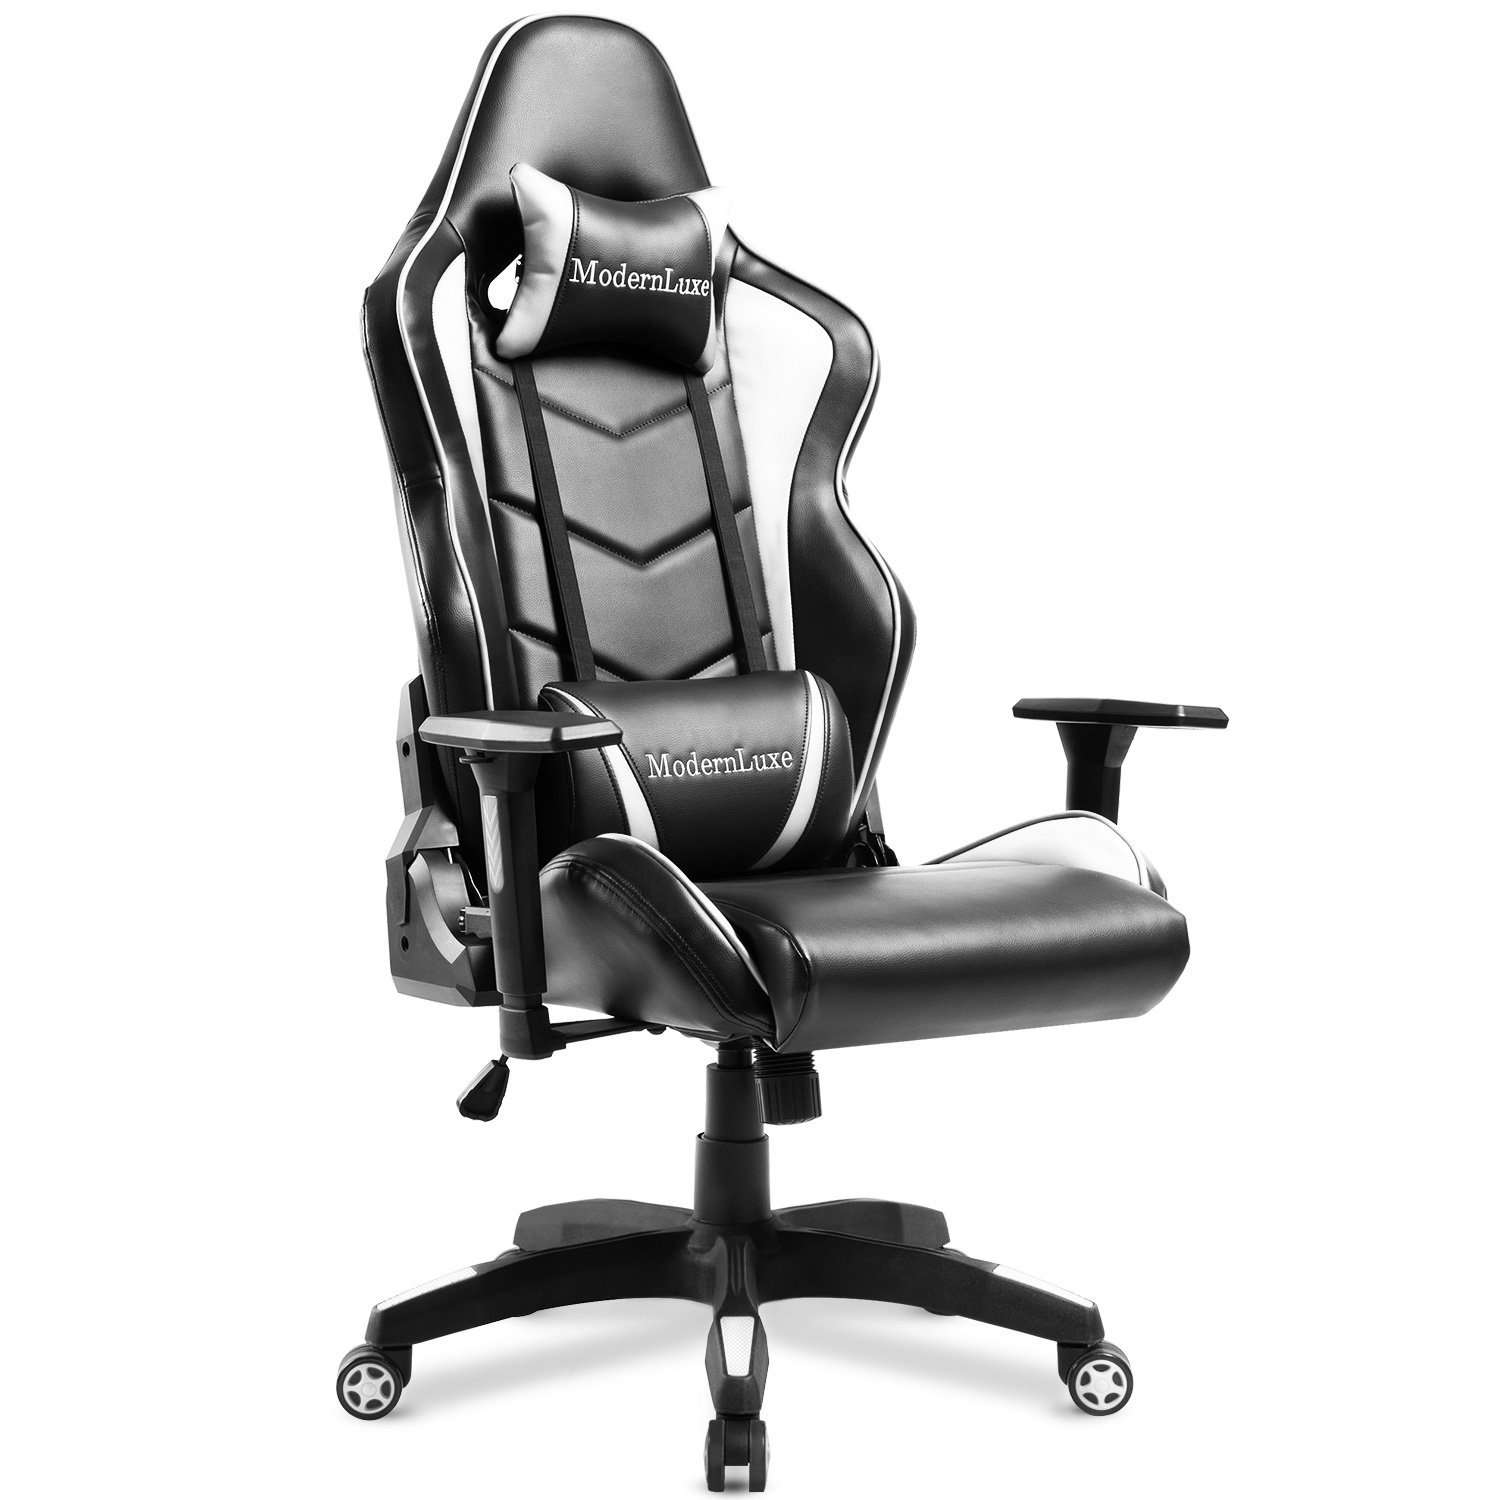 Back Support Office Chair Modernluxe Gaming Chair High Back Office Chair Lumbar